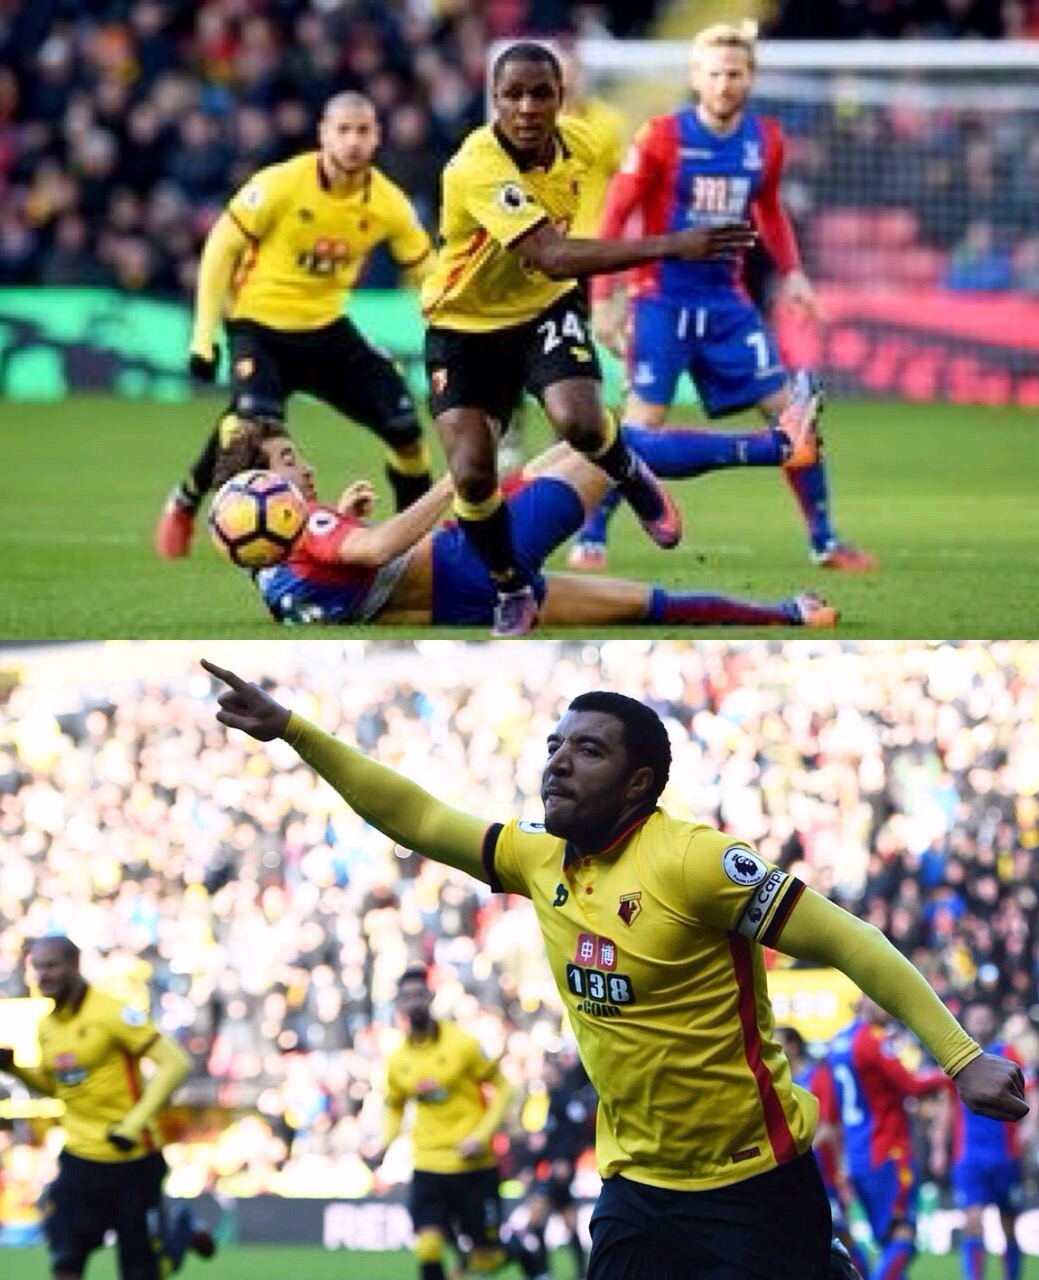 Ighalo Fires Blanks As Deeney's 100th Goal Saves Watford Vs Palace